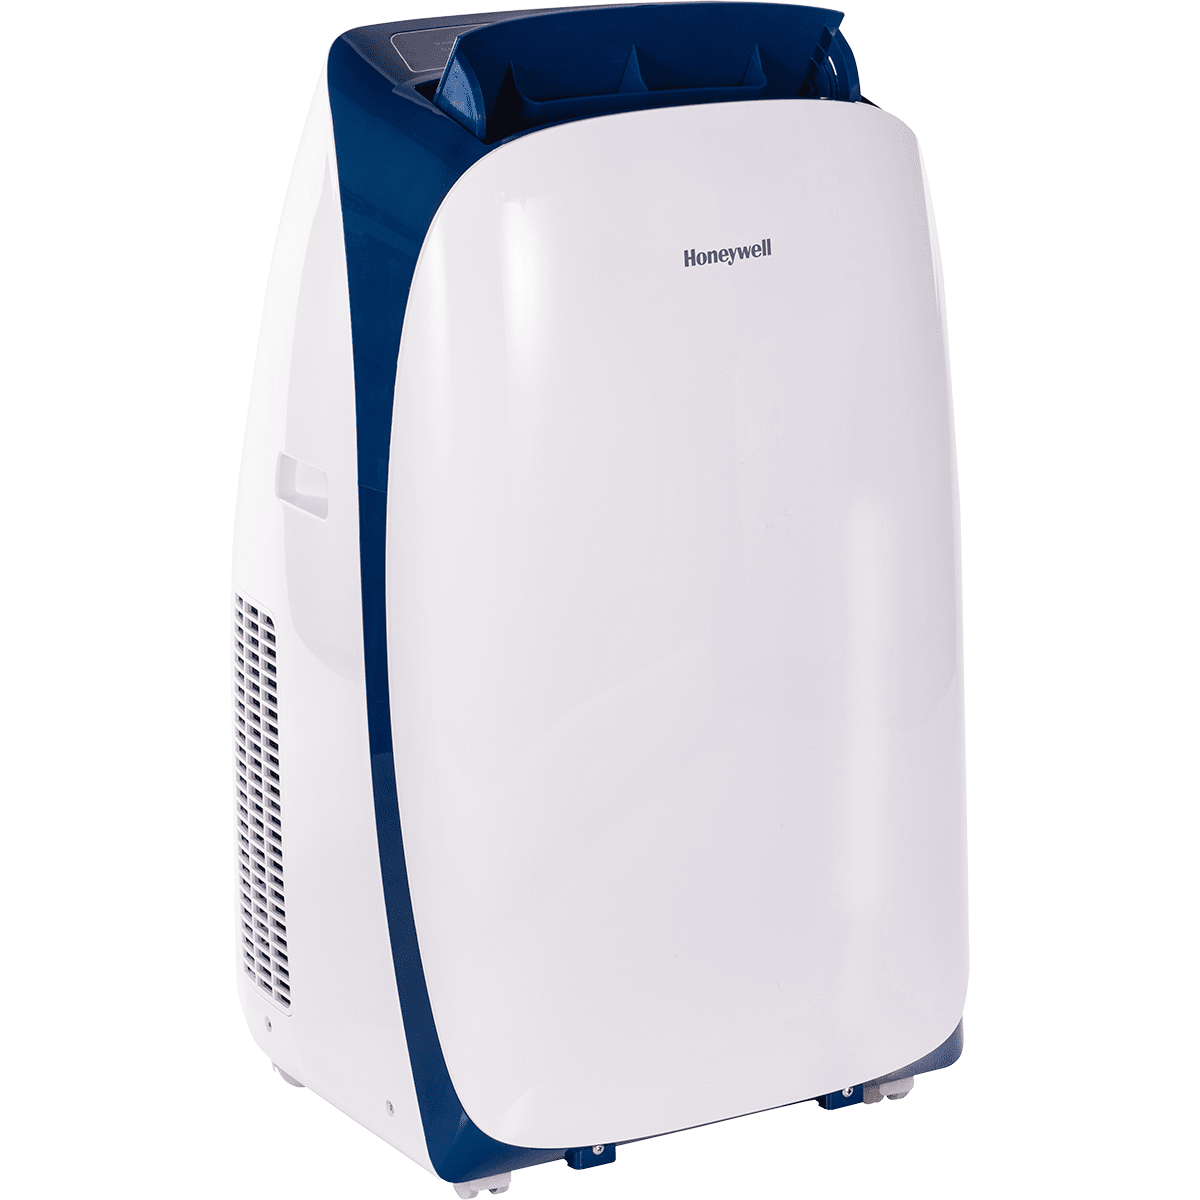 Honeywell Portable Air Conditioner with Remote Control